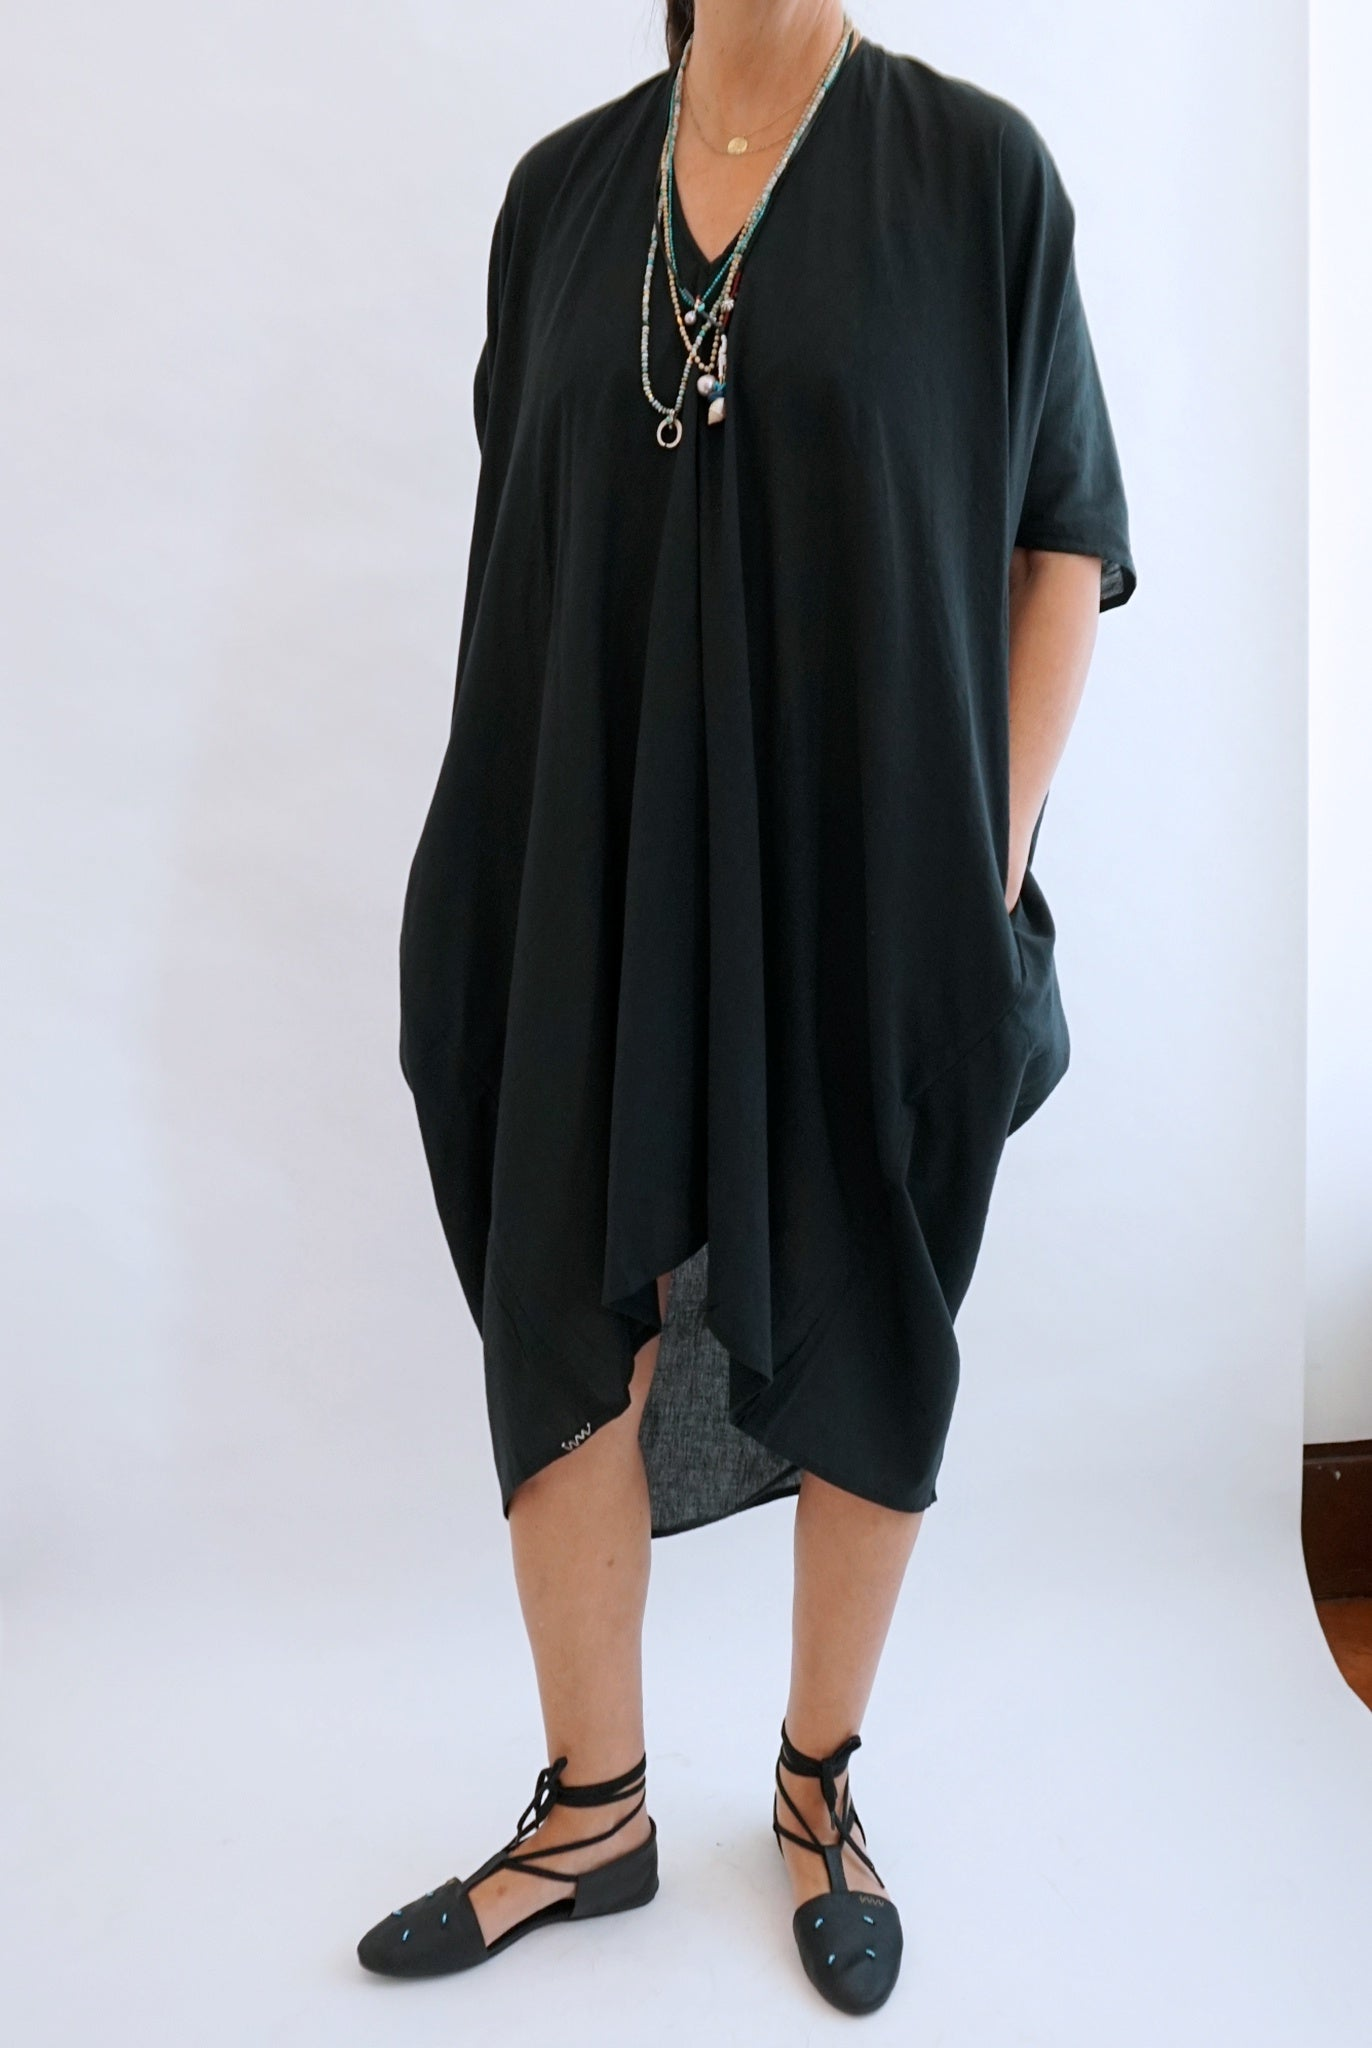 VISVIM Black Ruana Dress